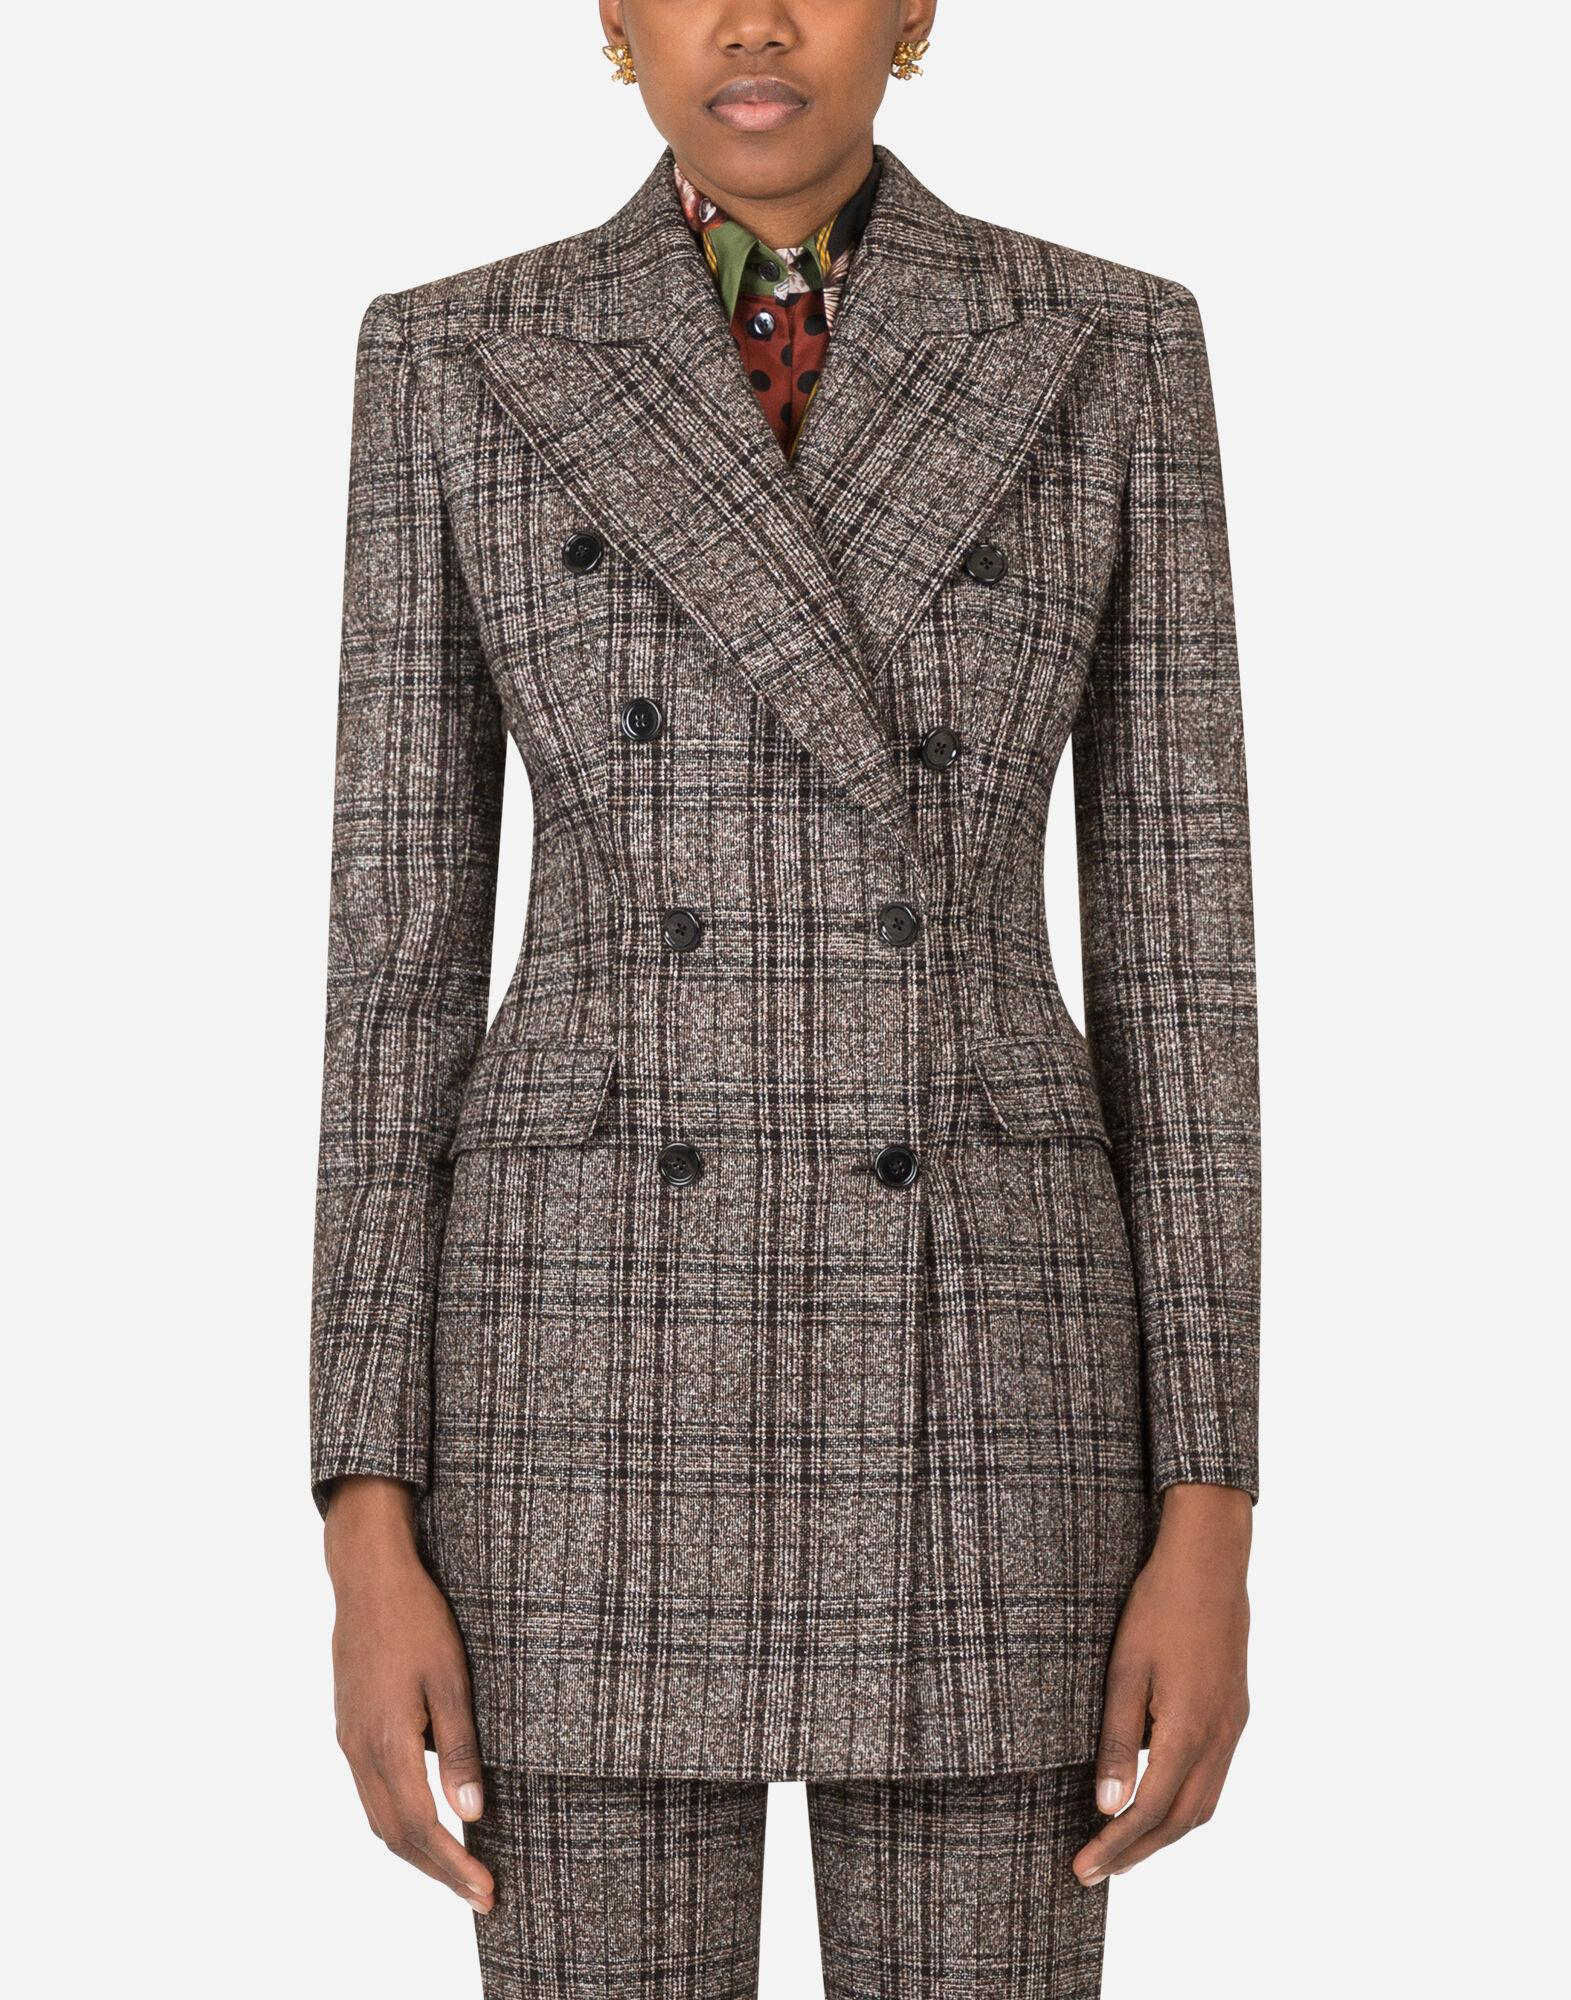 Double-breasted jacket in checked tartan